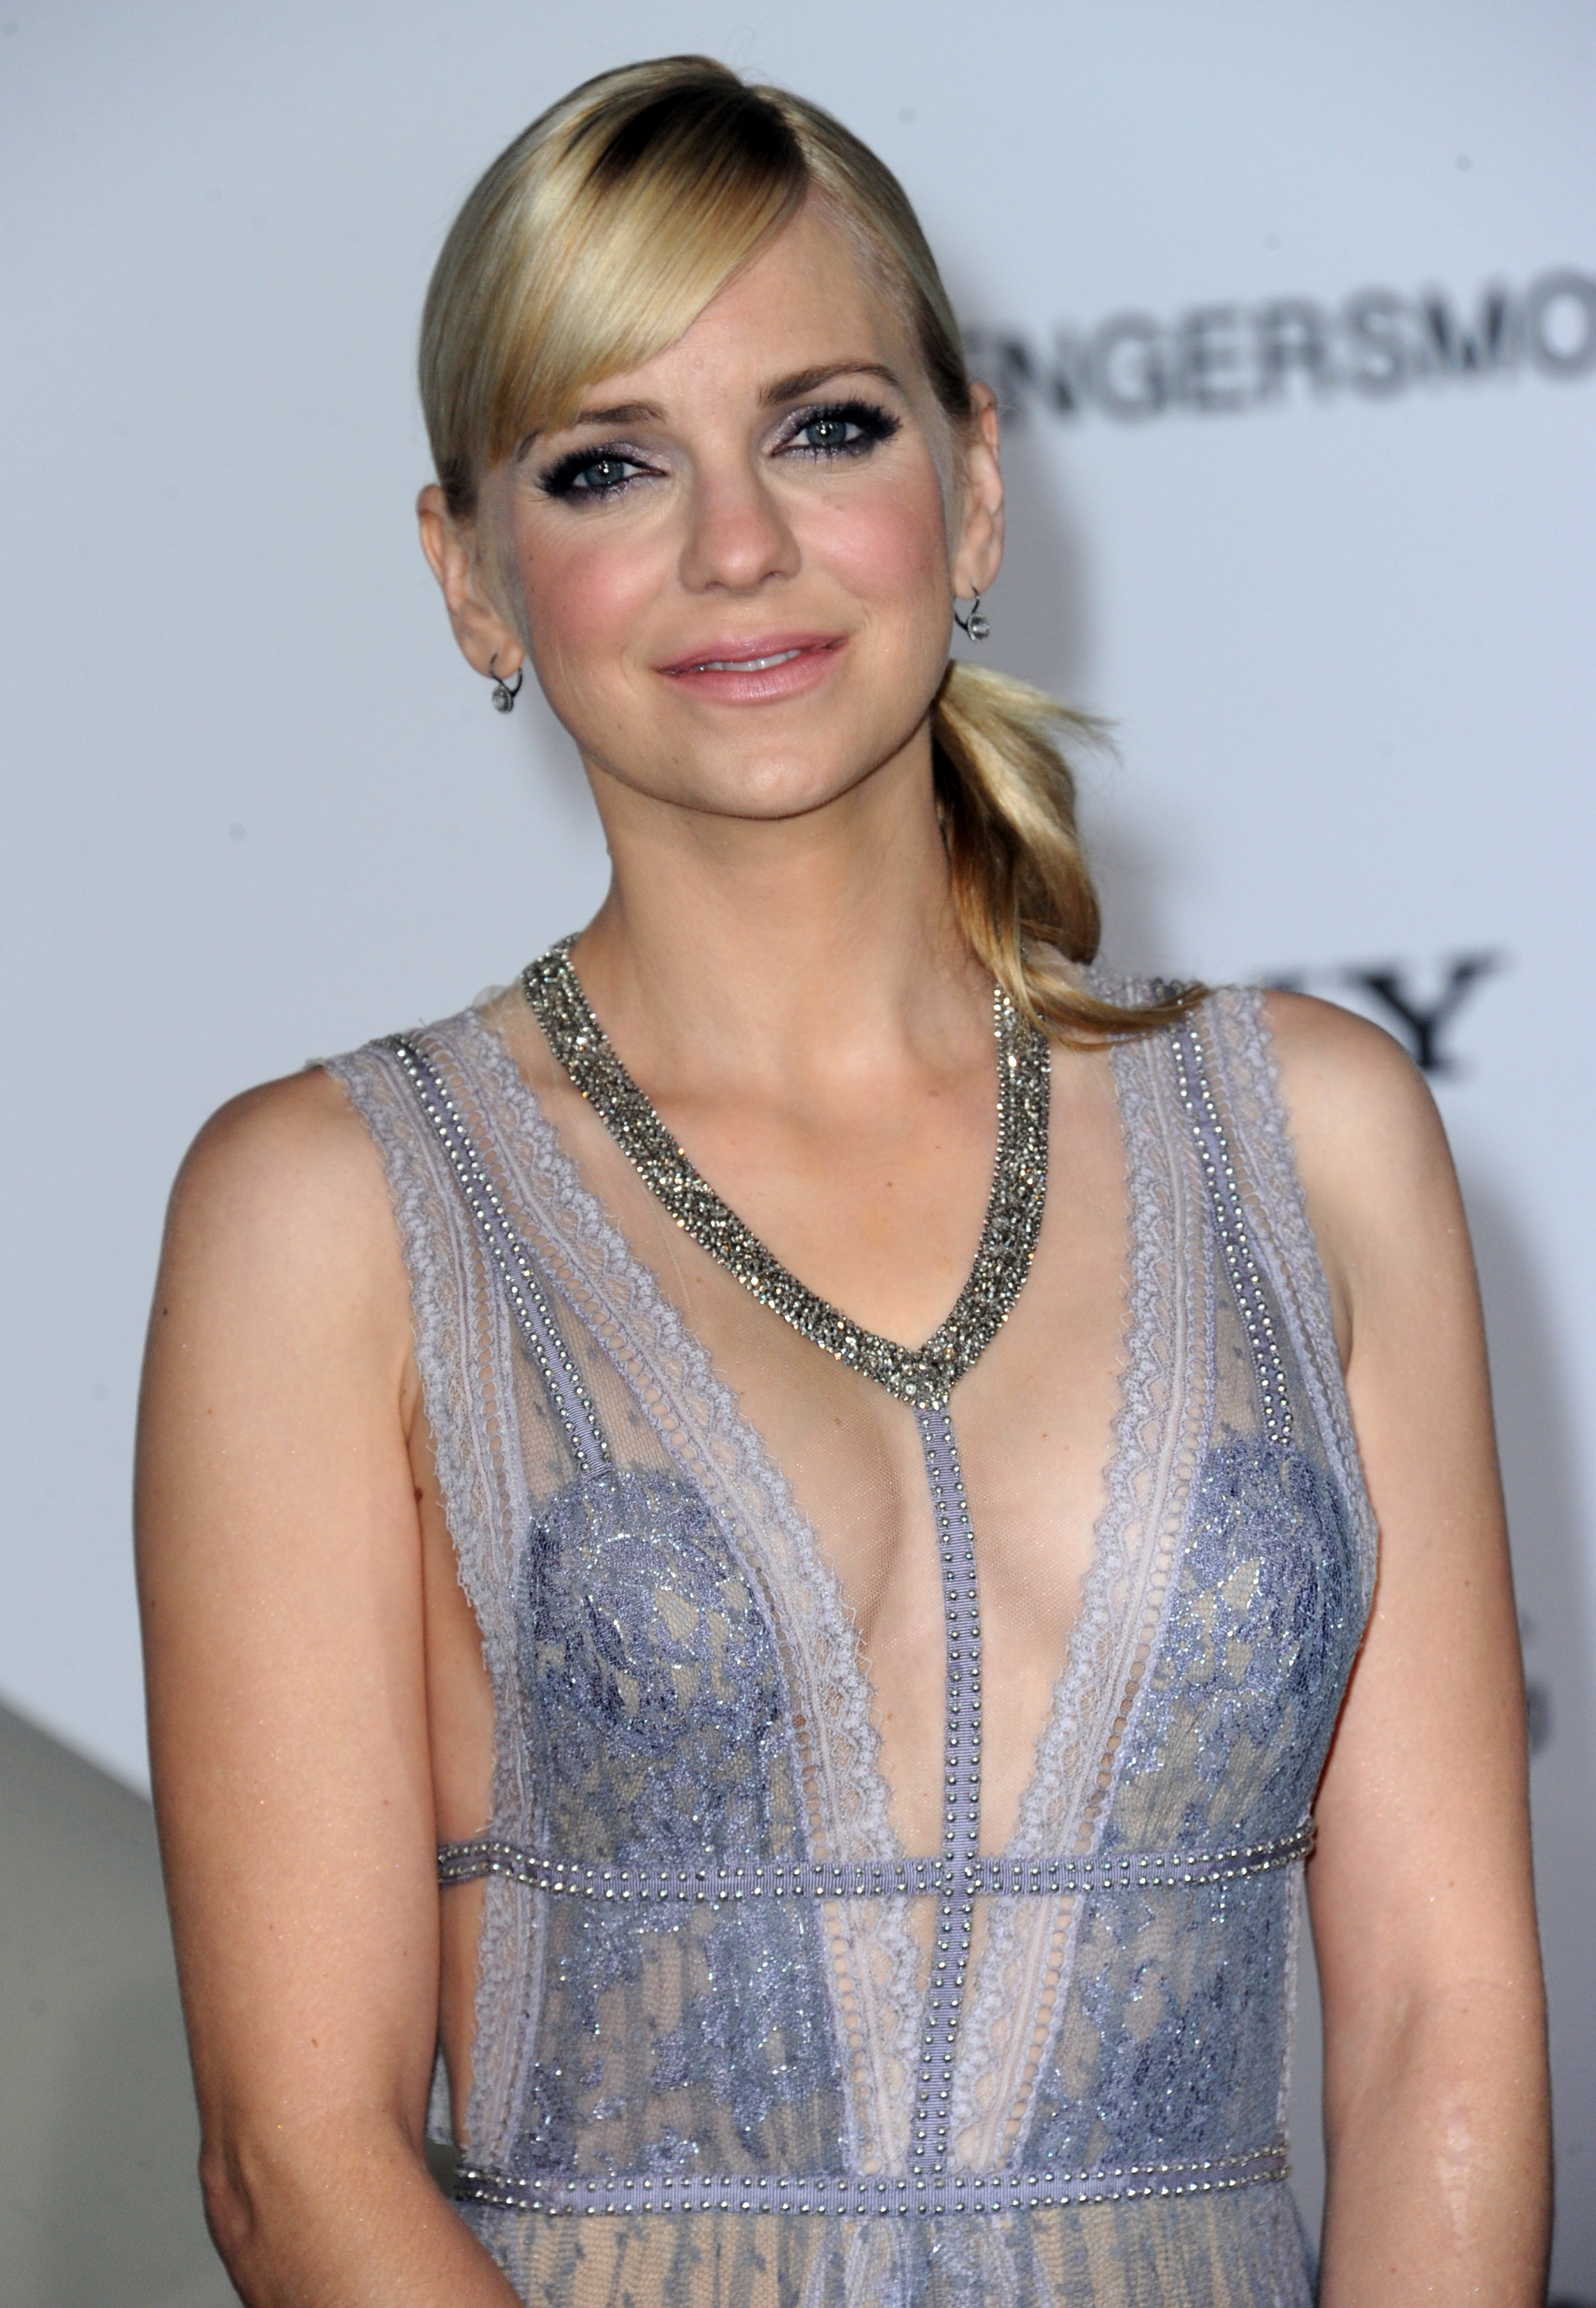 Anna Faris is giving us so many style goals in this sheer lilac gown with floral embellishments ...